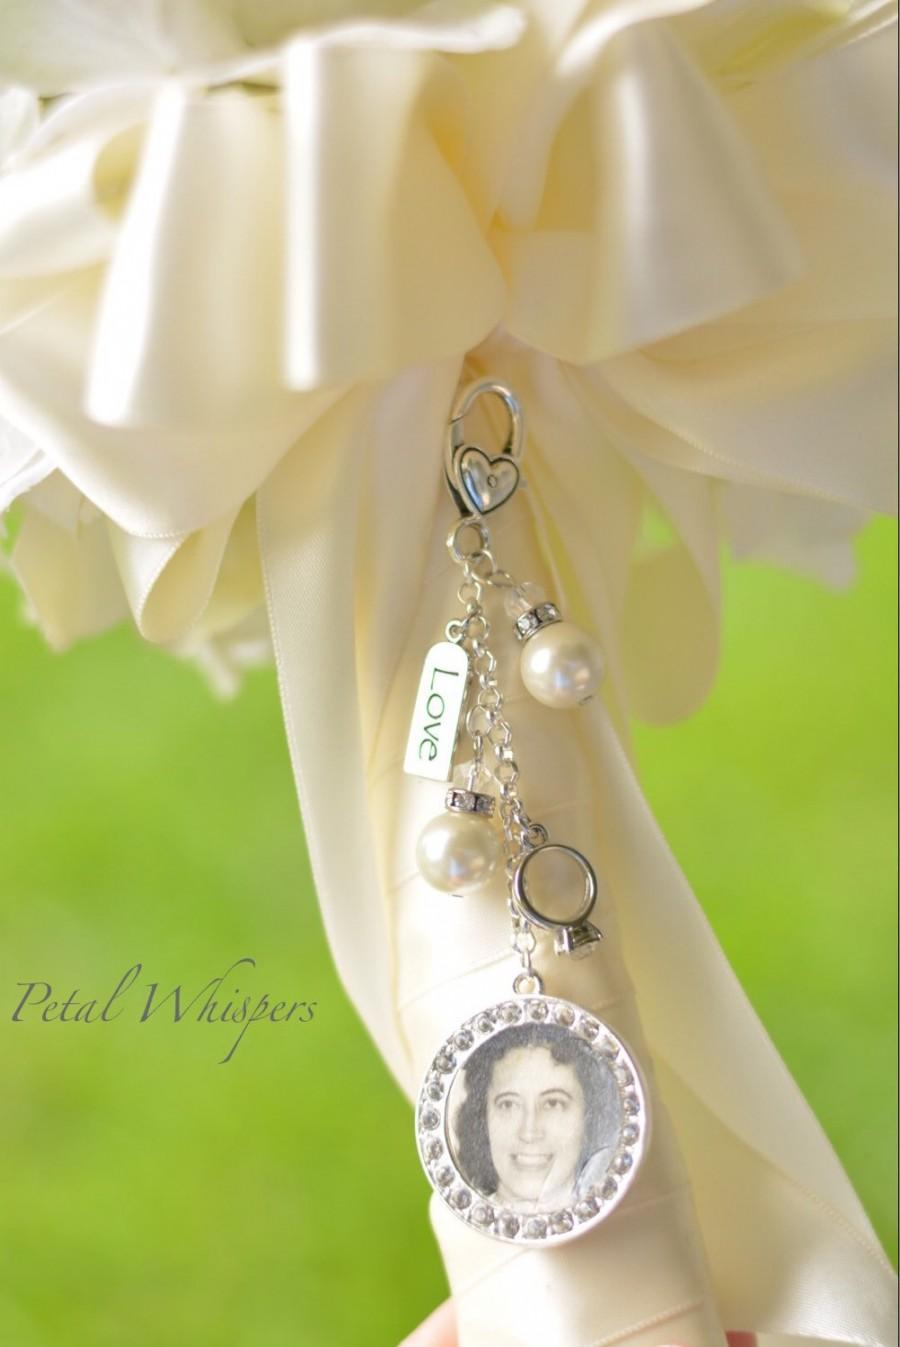 Mariage - Bouquet Charm -  Bridal Bouquet Charm - Bride Picture Charm -Bridal Gift -  Bridal Accessories - Wedding Photo Charm - Gift For Bride -